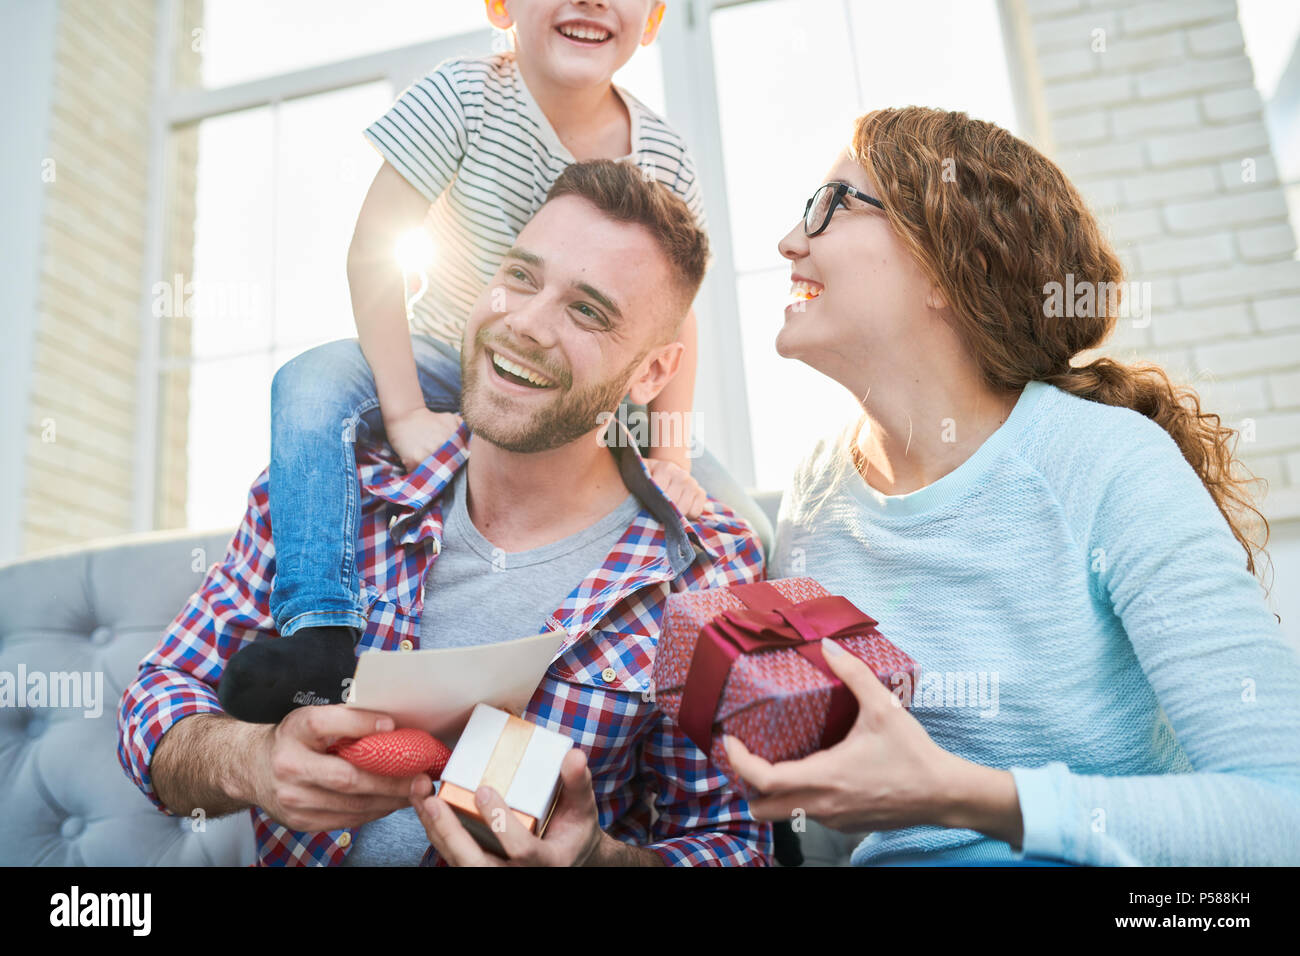 Warm toned portrait of playful happy family holding presents siting on sofa in living room at home, focus on smiling handsome man - Stock Image